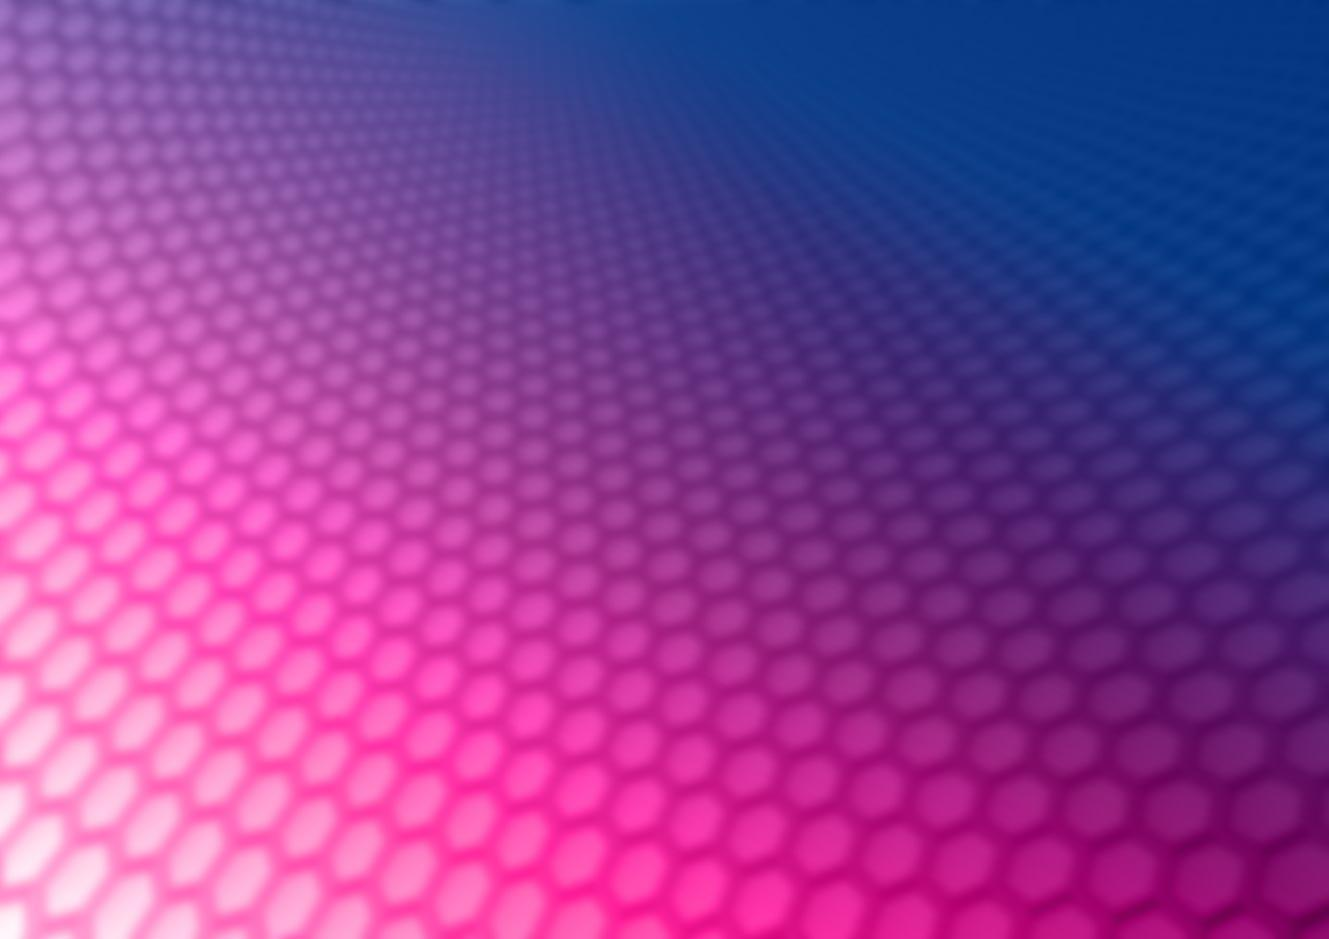 35 free tech backgrounds - photo #32